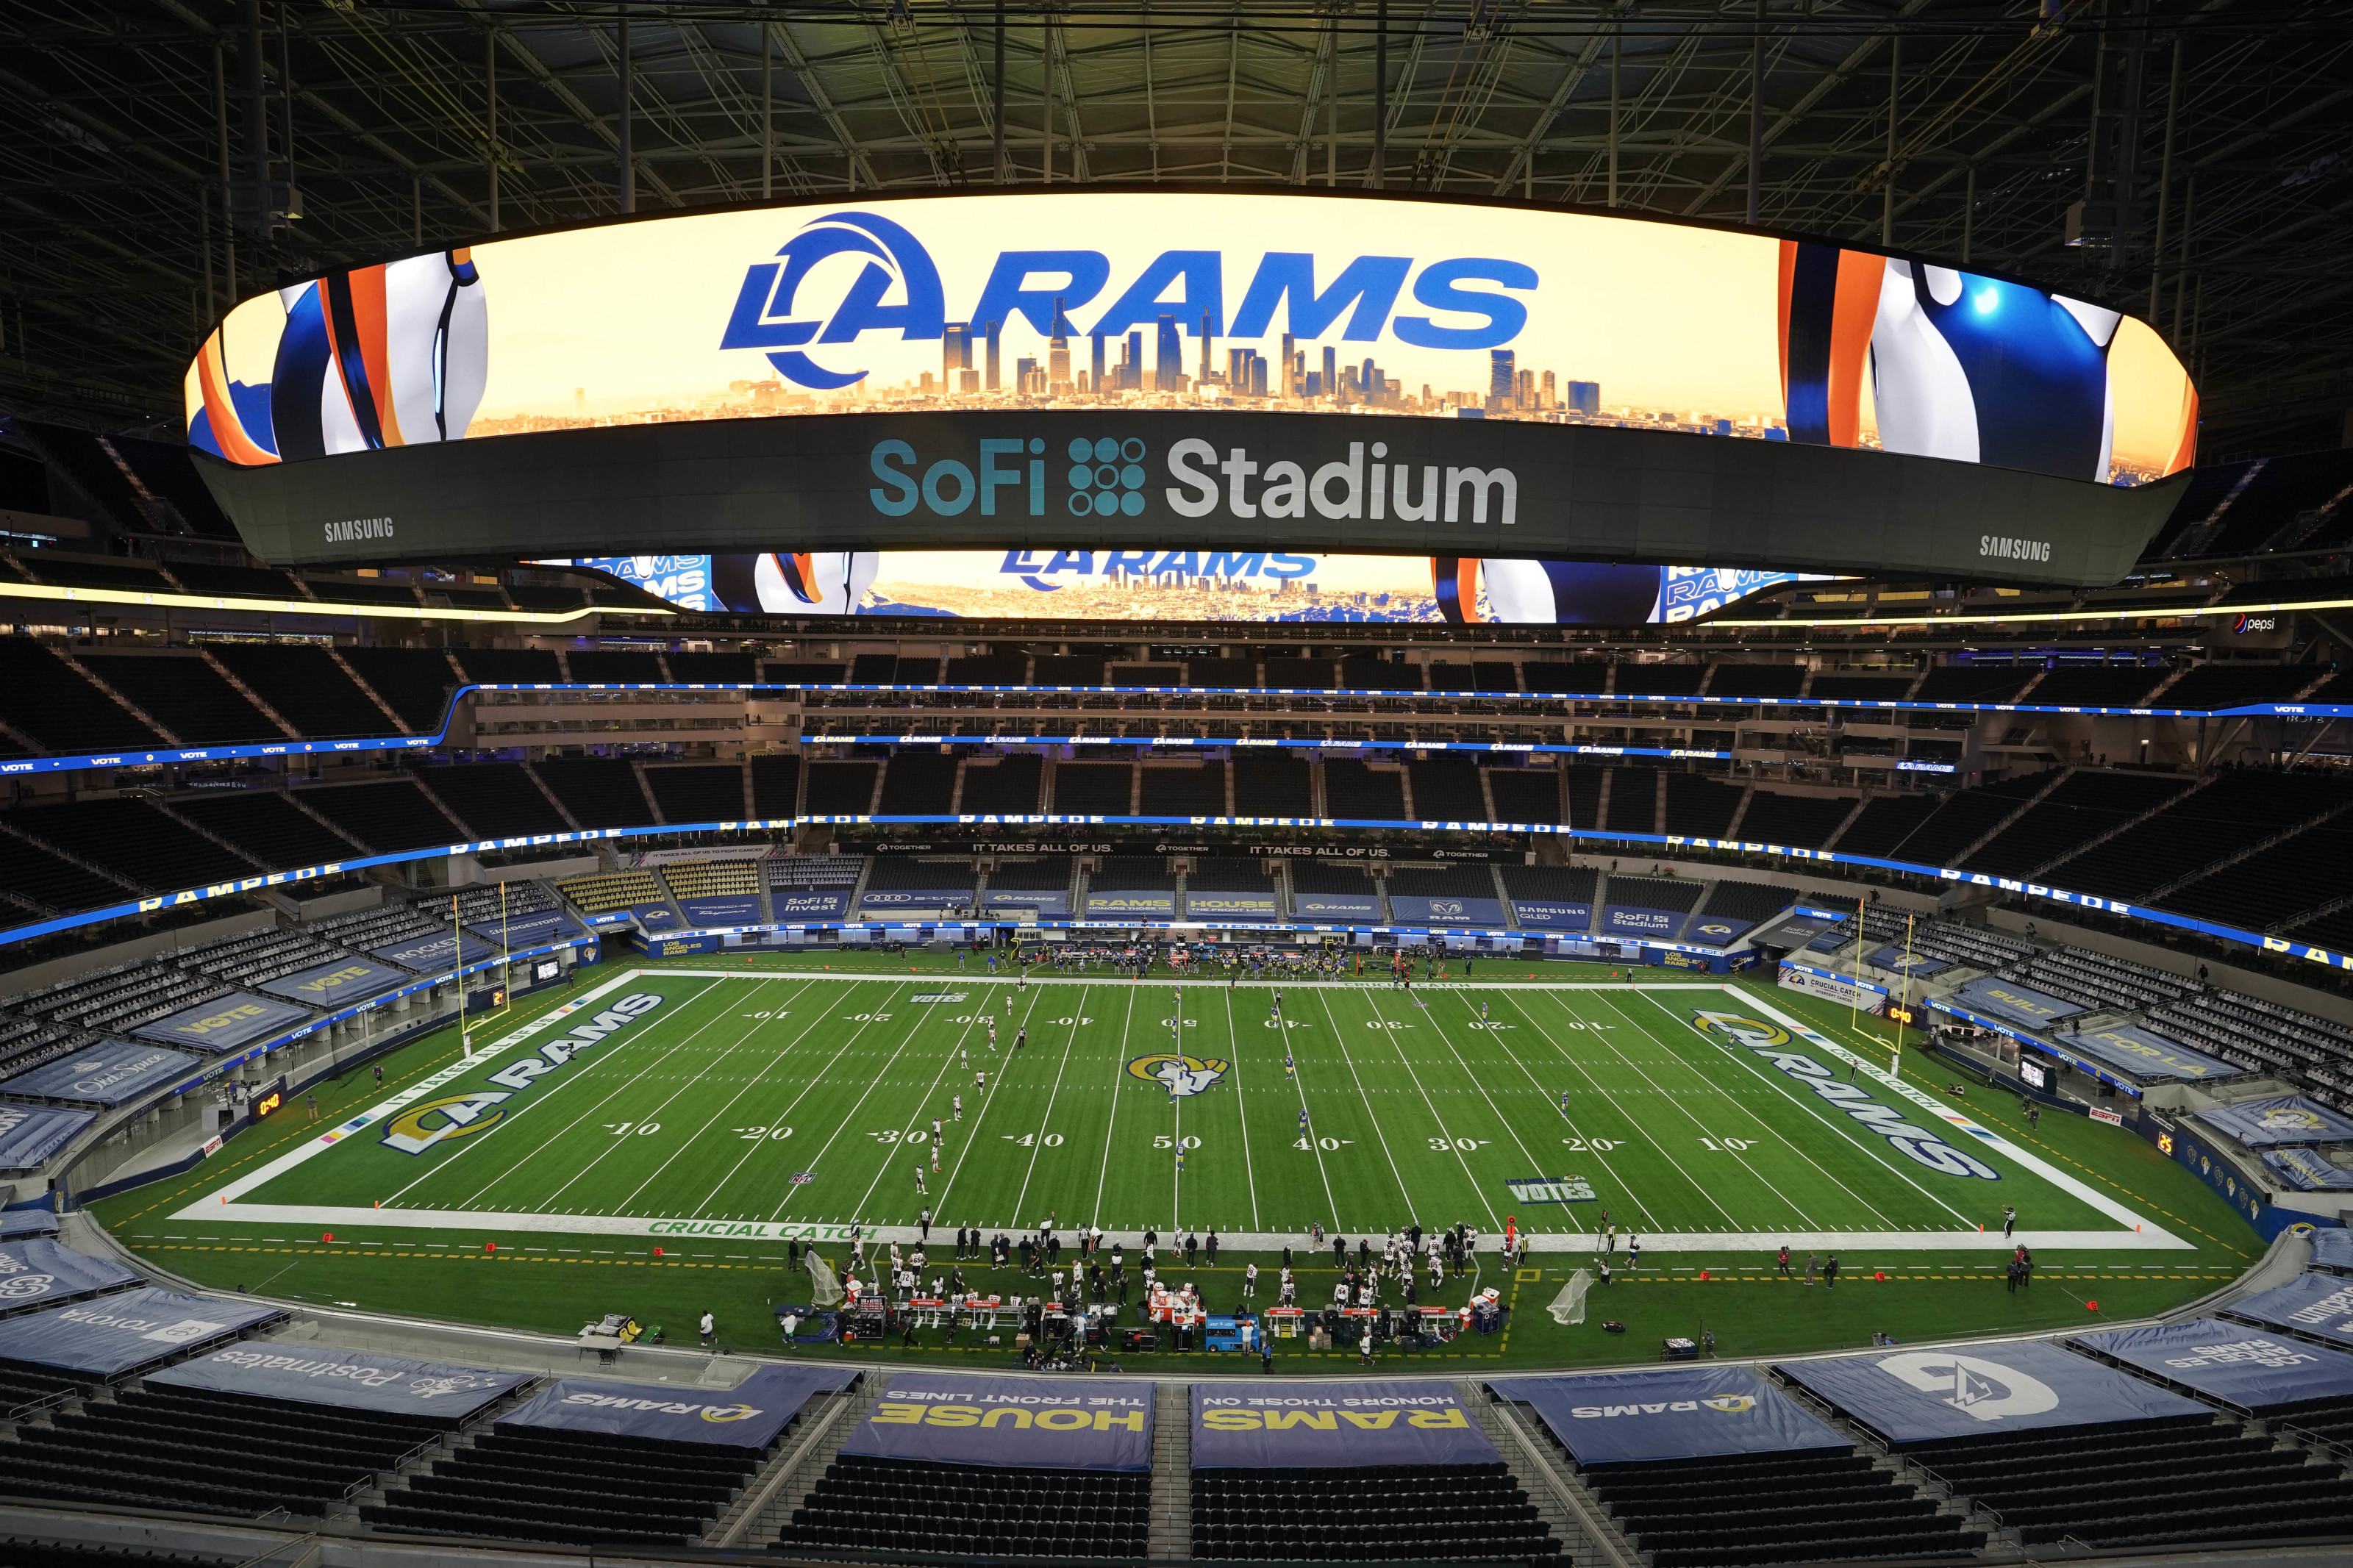 La Rams Sofi Stadium Stands As The Crown Jewel Of The Nfl